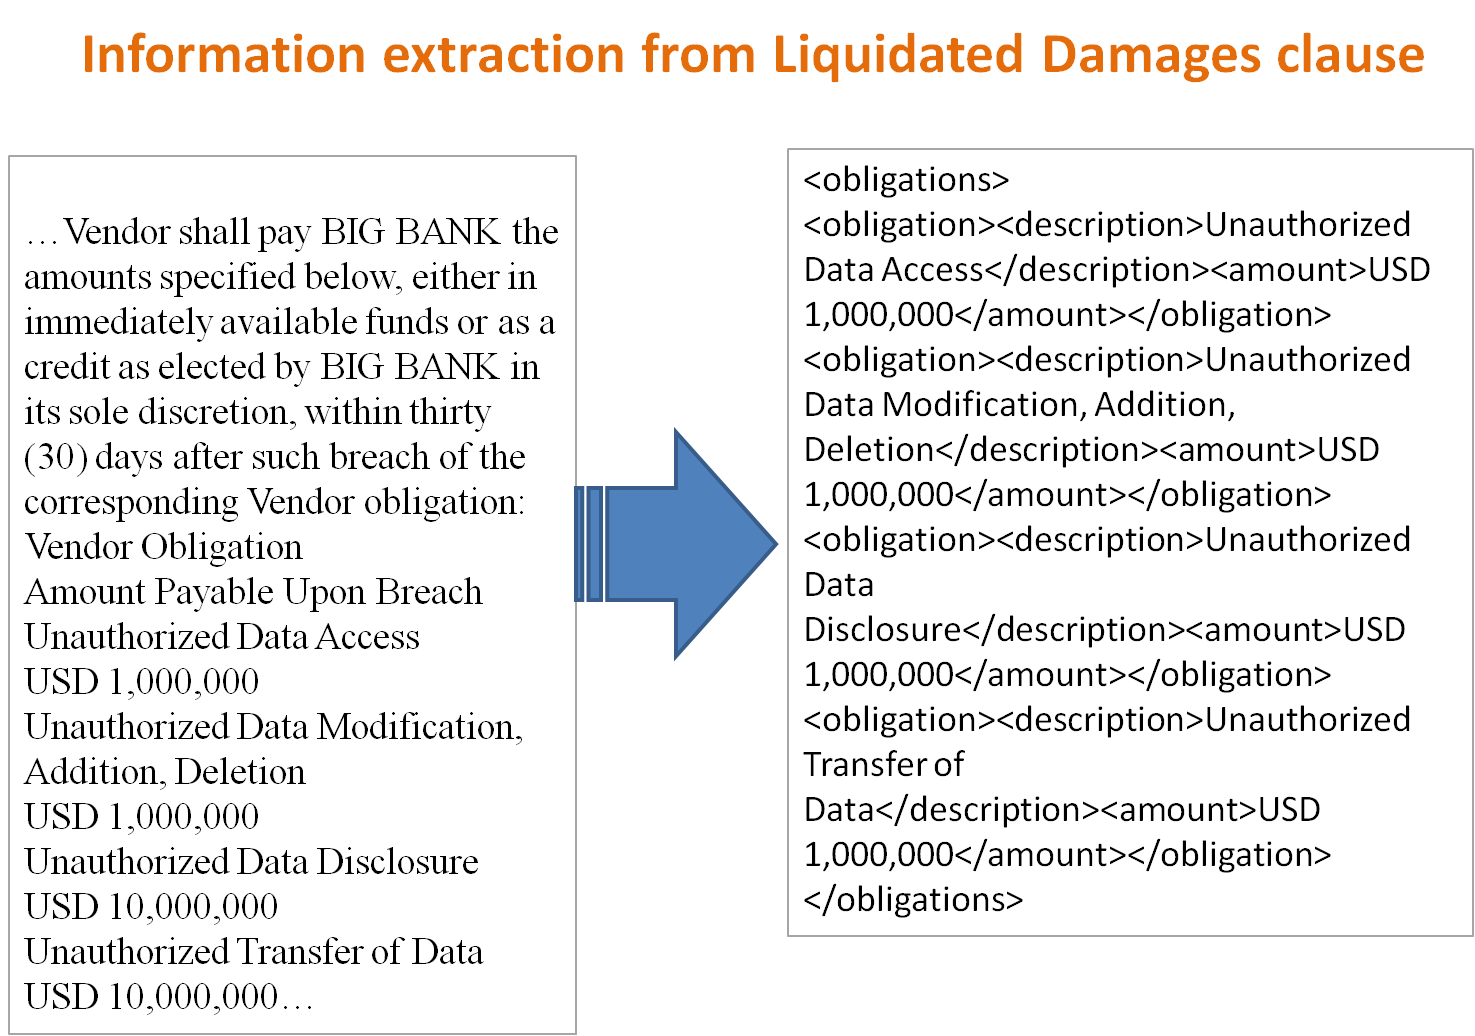 Information extraction from Liquidated Damages clause